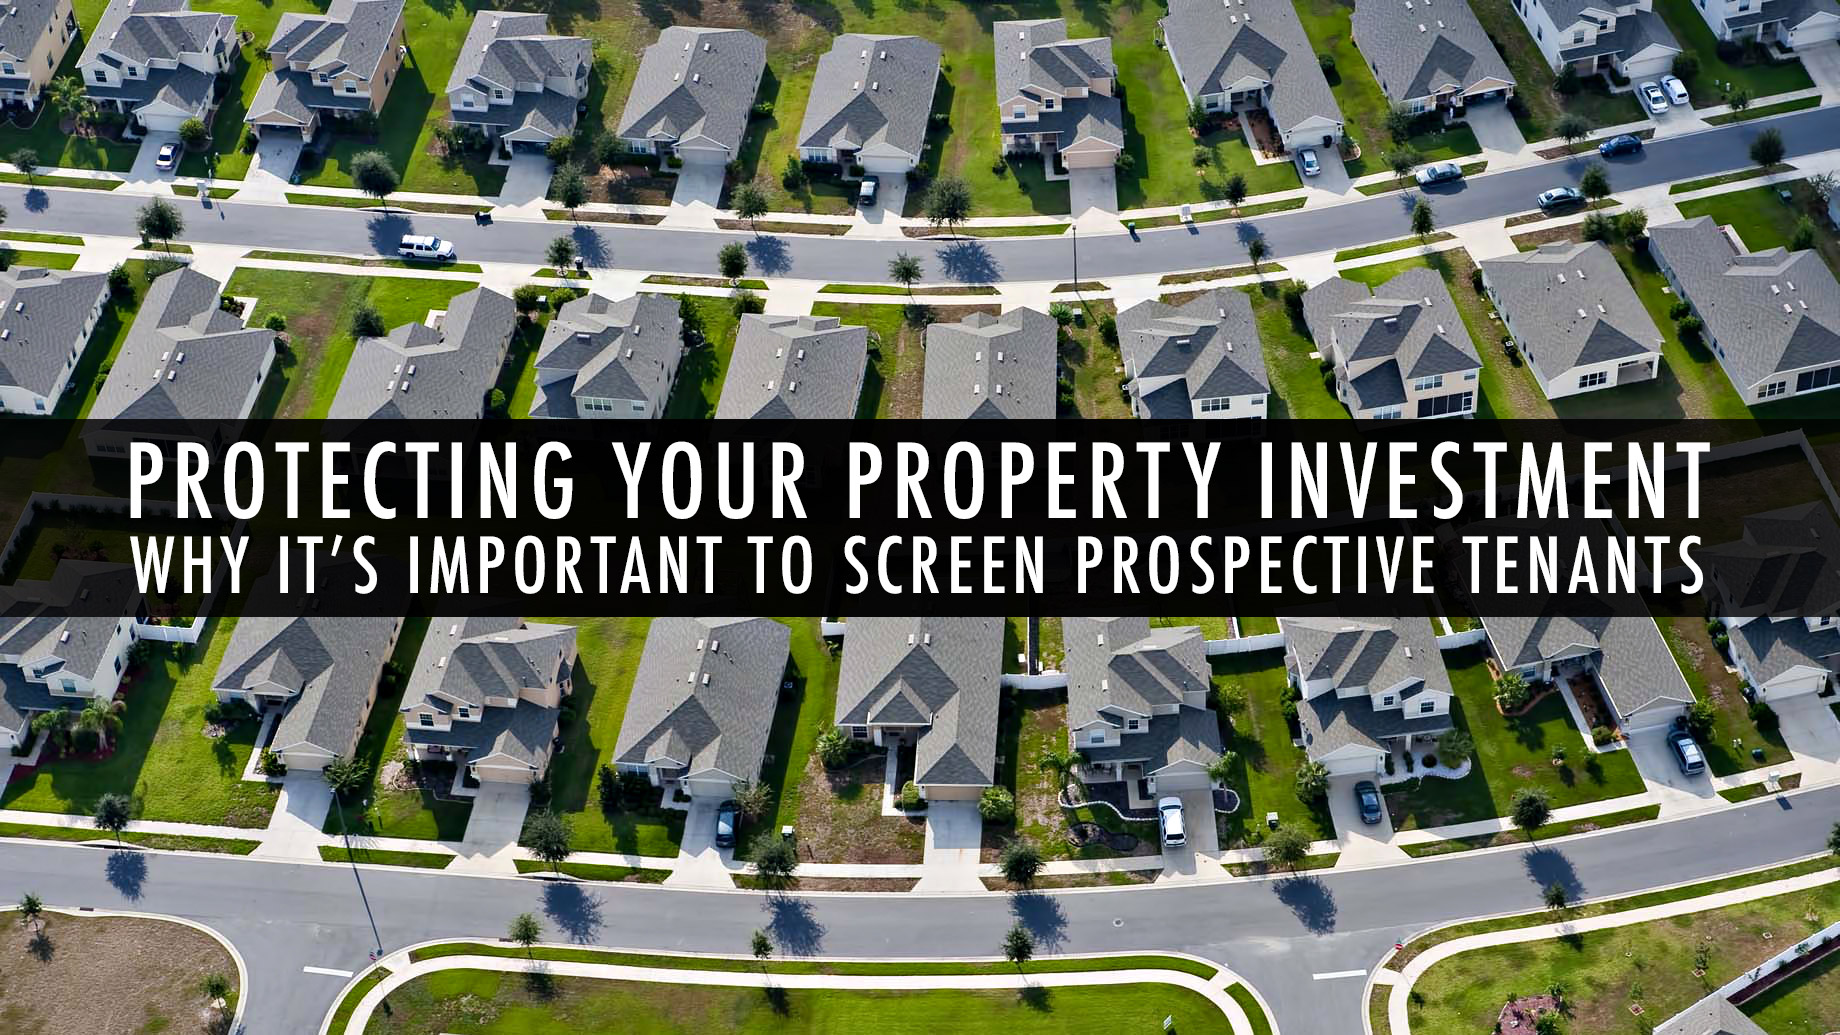 Protecting Your Property Investment - Why It's Important to Screen Prospective Tenants